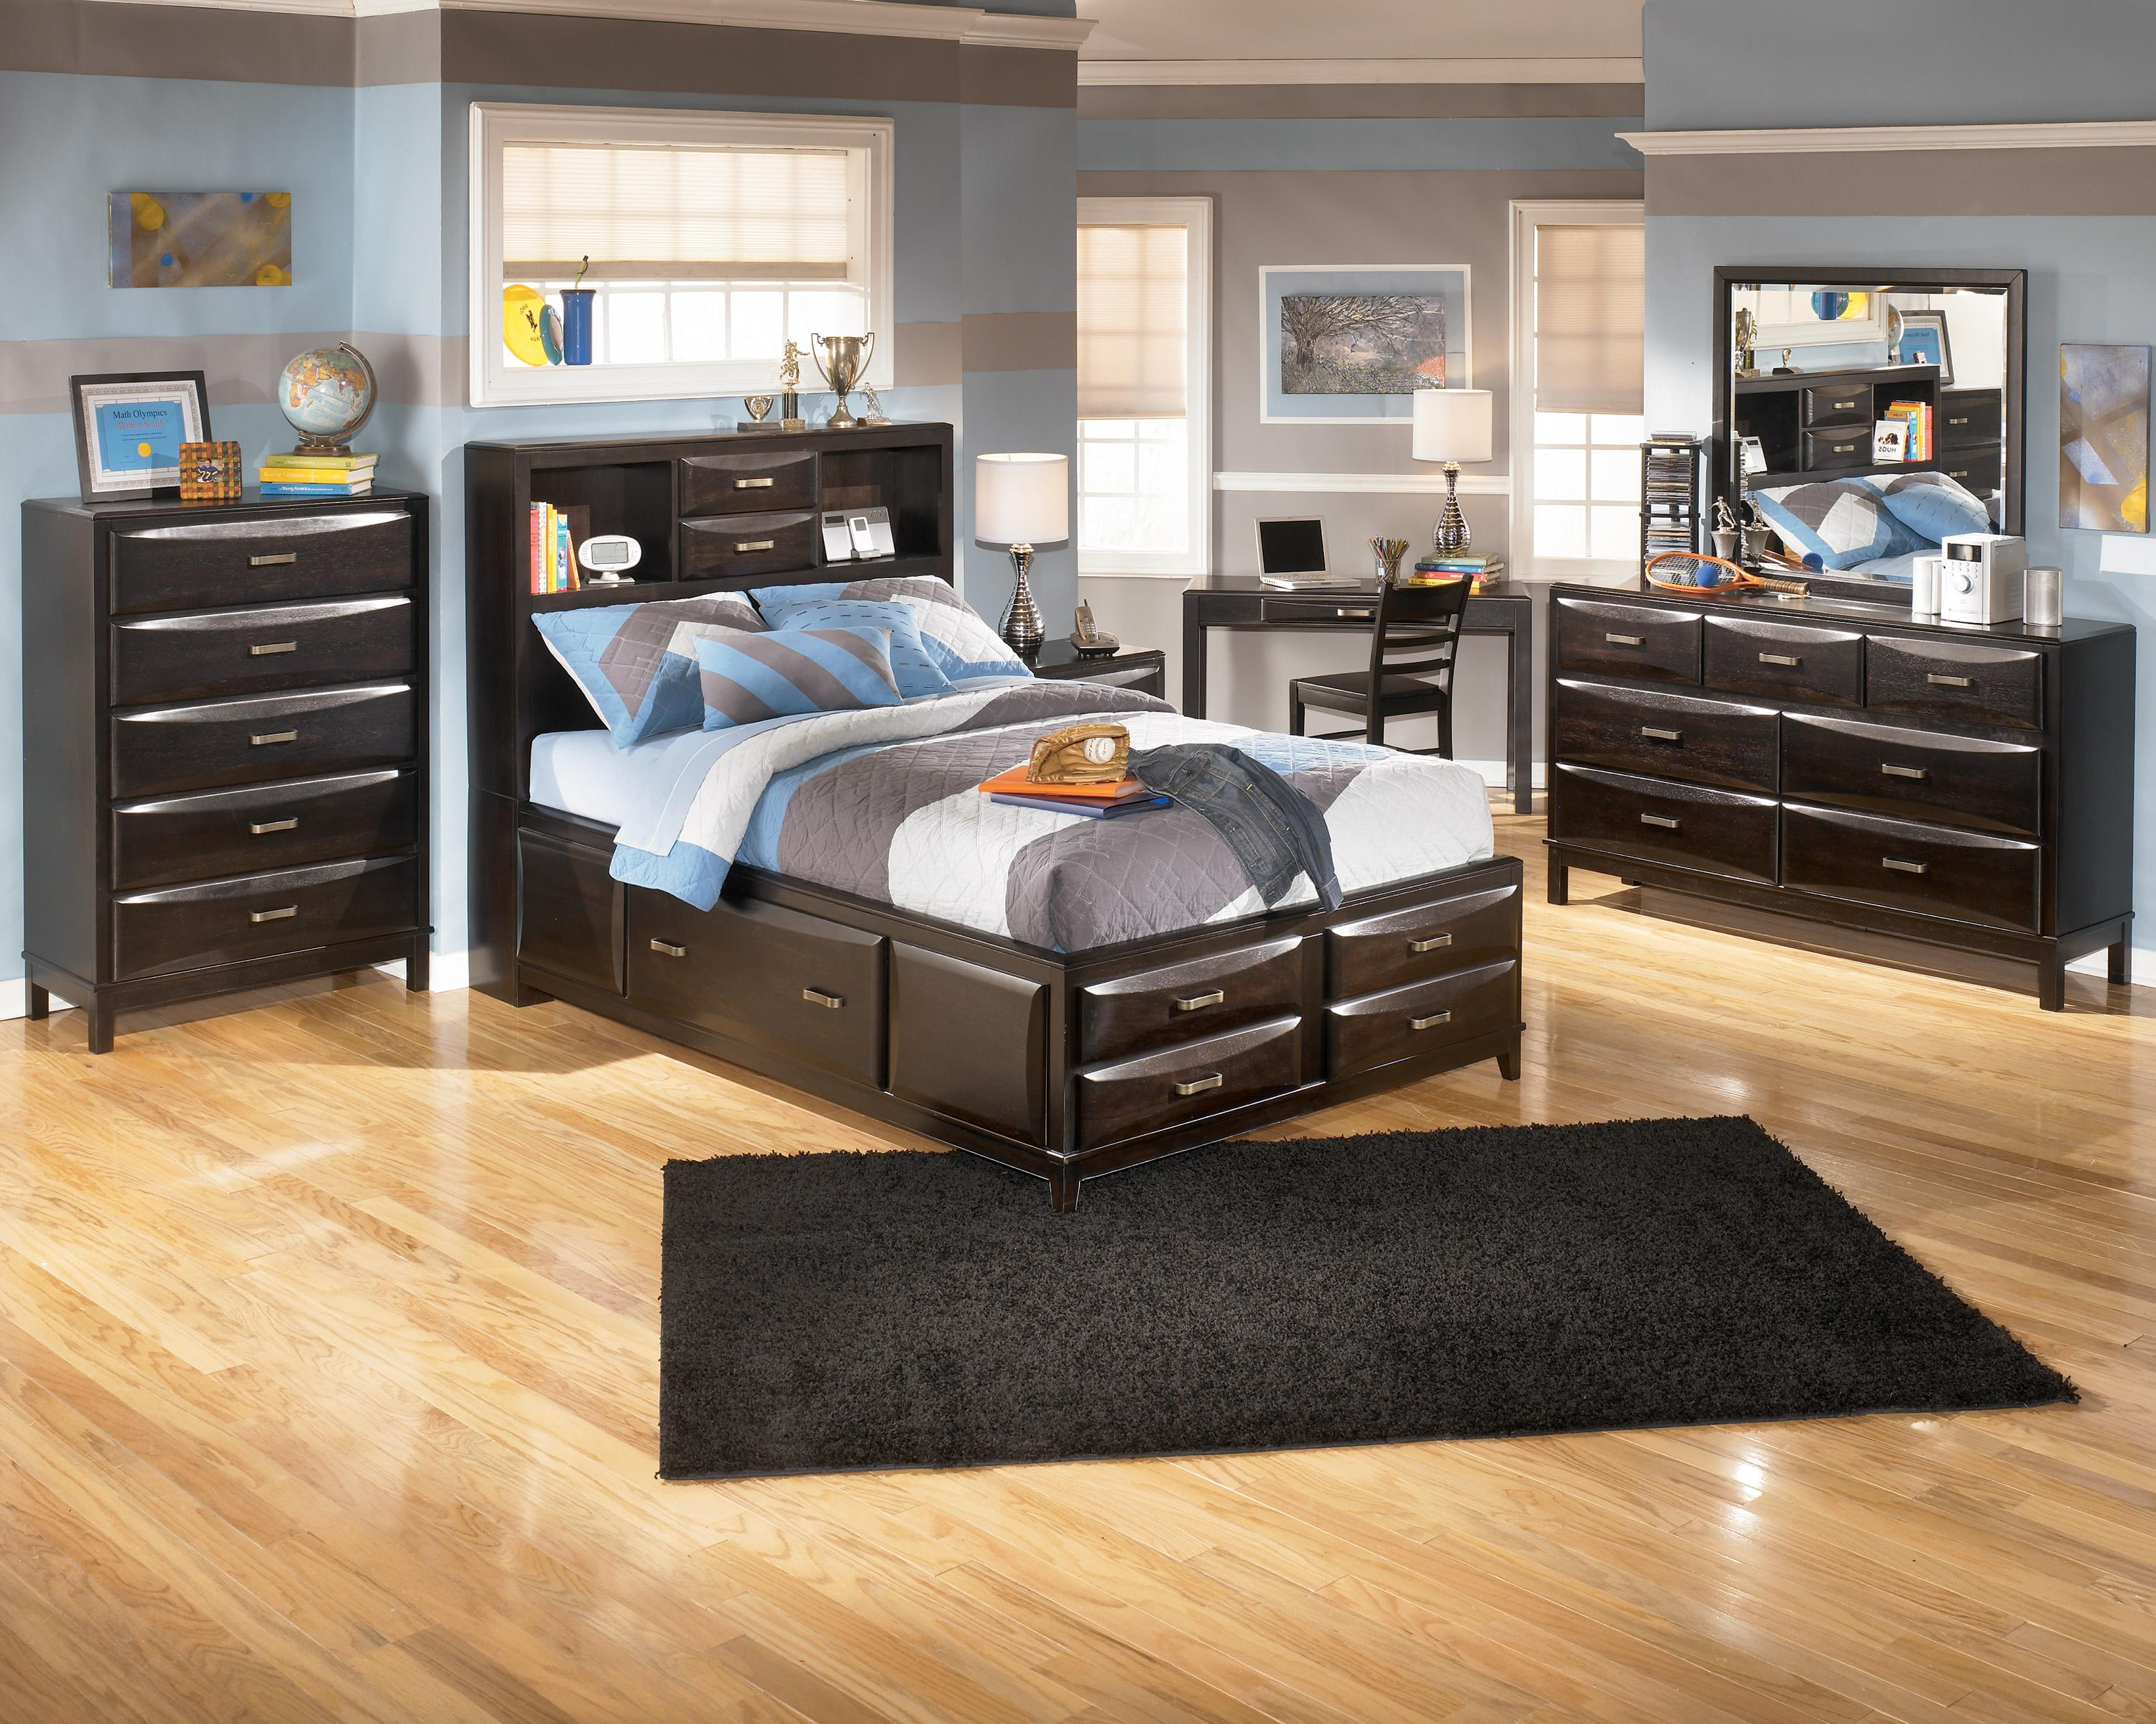 bedroom home size stores full nightstand sofa sets dresser set furniture good and furnishing distressed wood